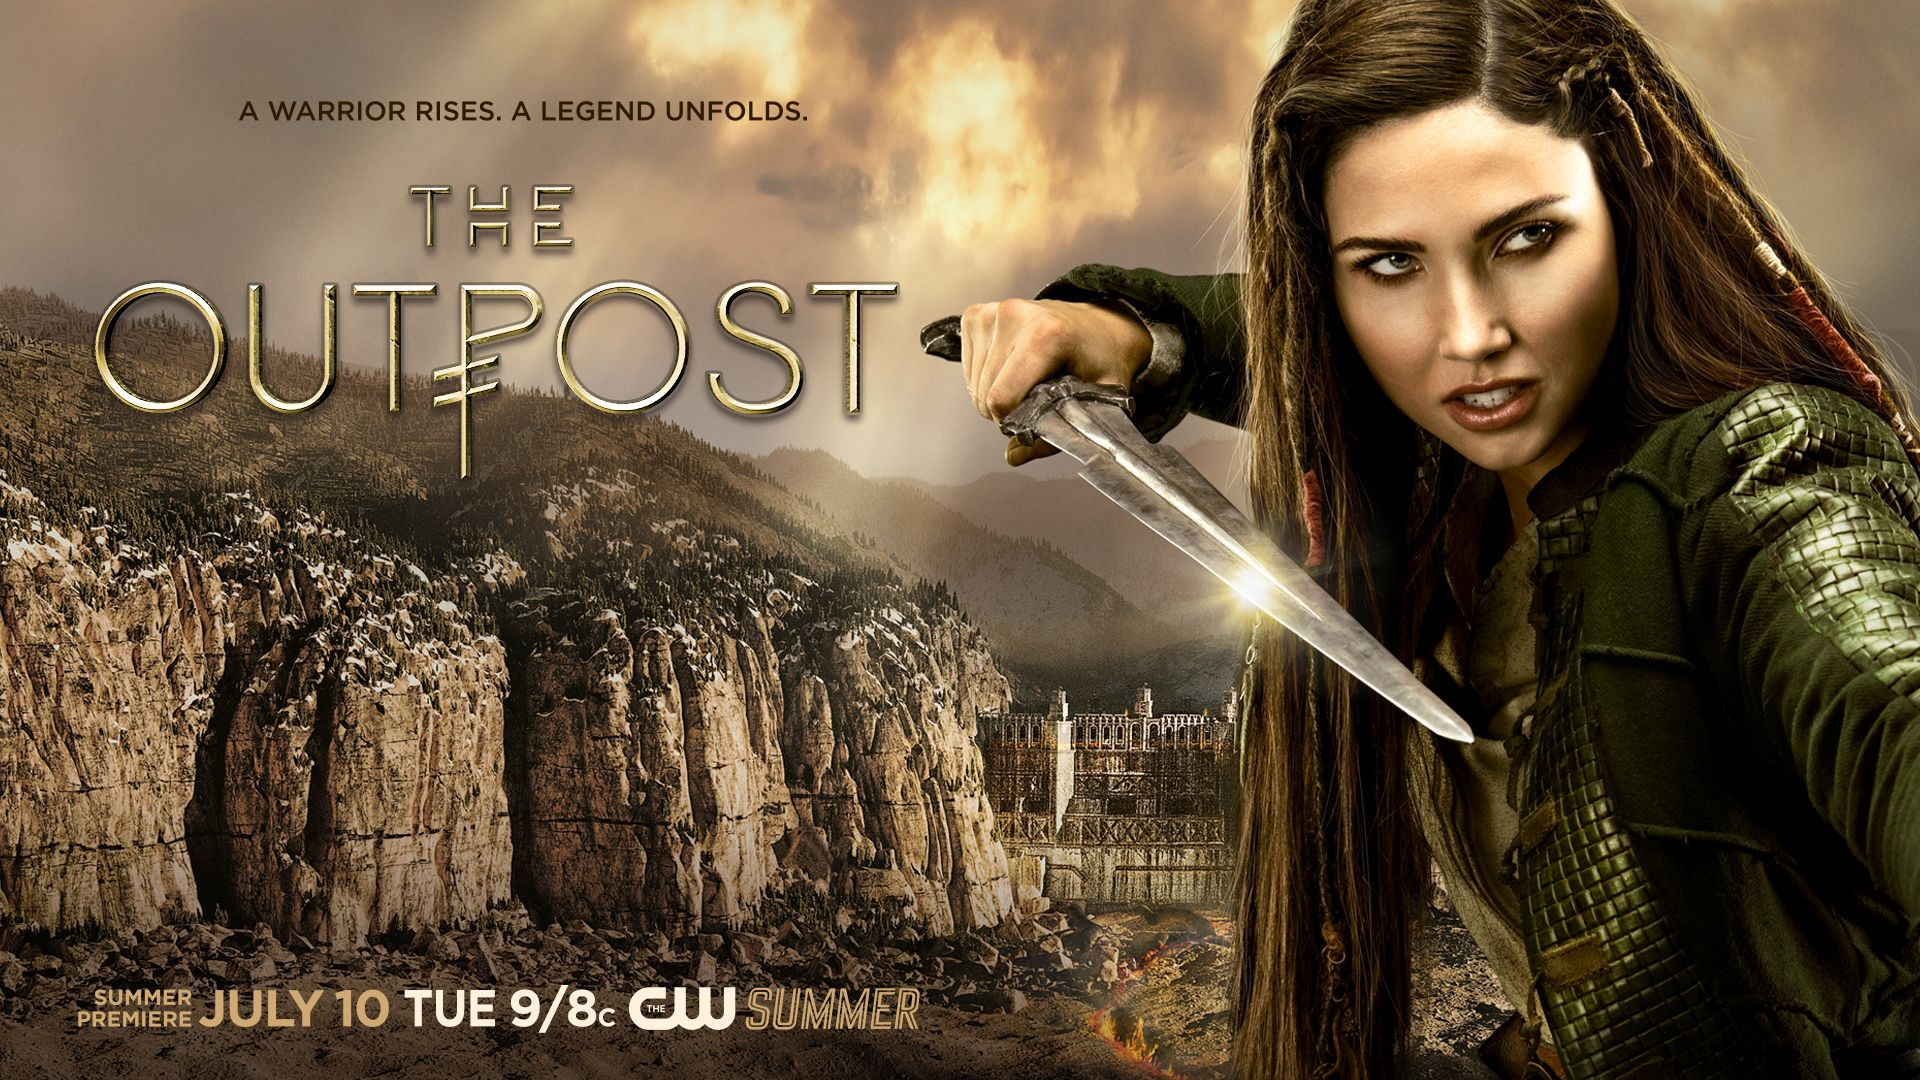 The Outpost TV Show on CW Ratings (Cancel or Season 2